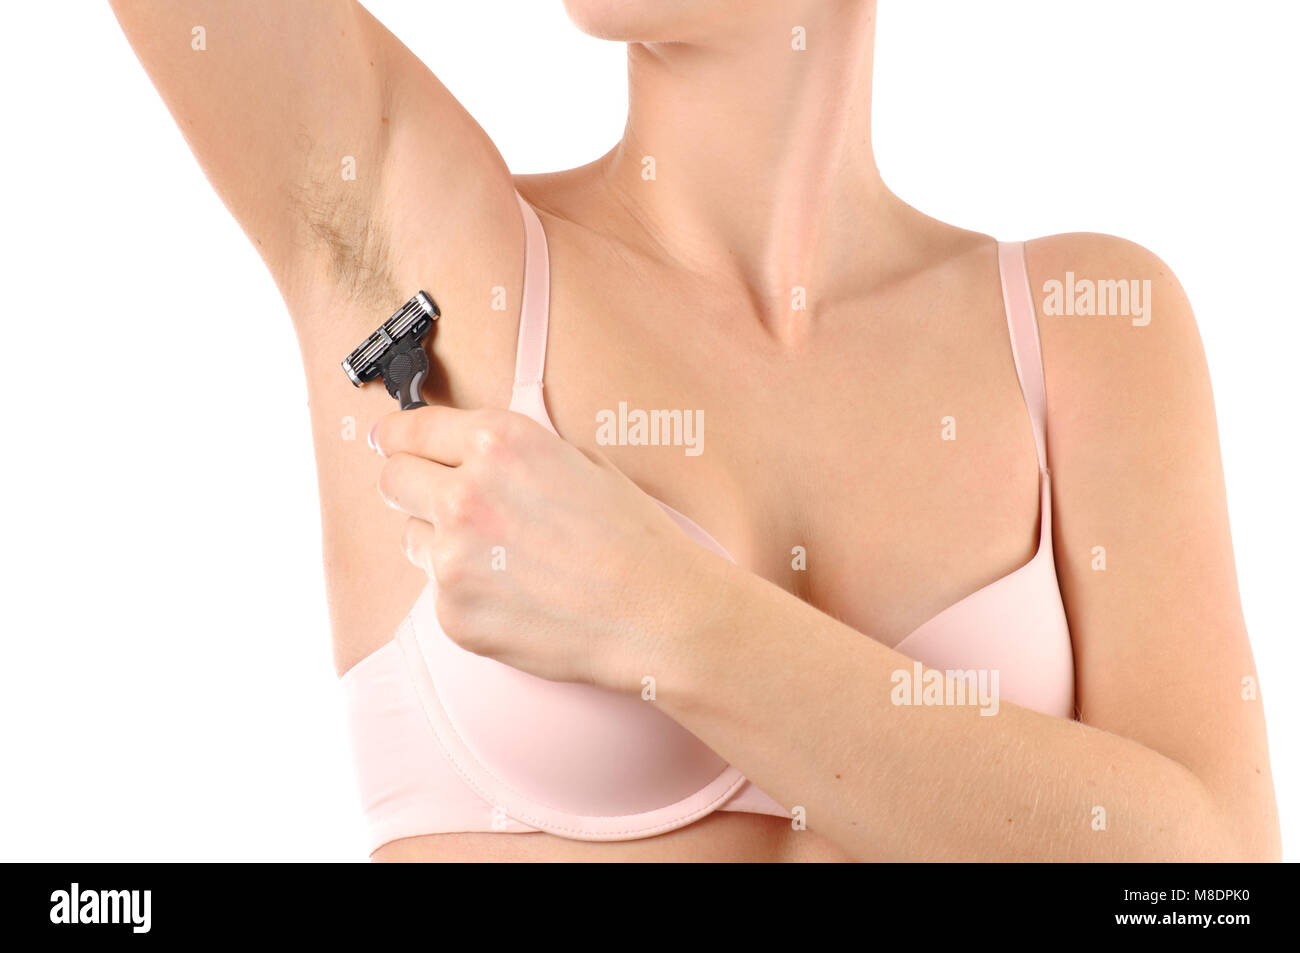 Woman shaving razor armpit on white background. Depilation, hair removal and skin care concept. - Stock Image